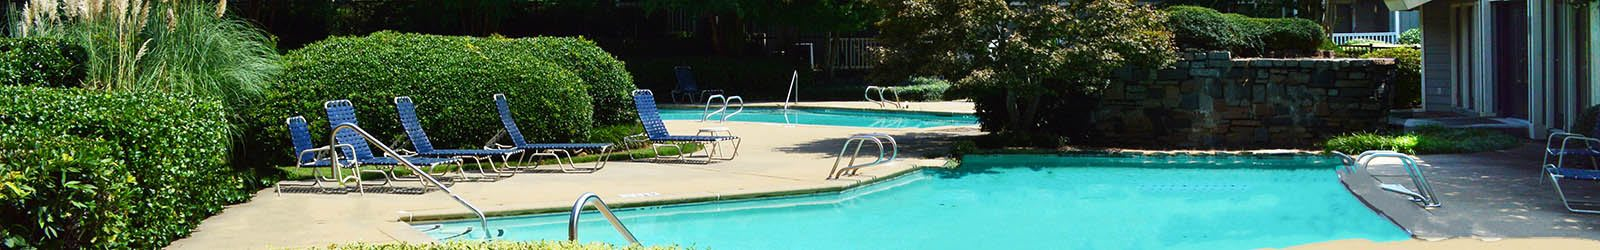 Sparkling swimming pool at our Clarkston apartments